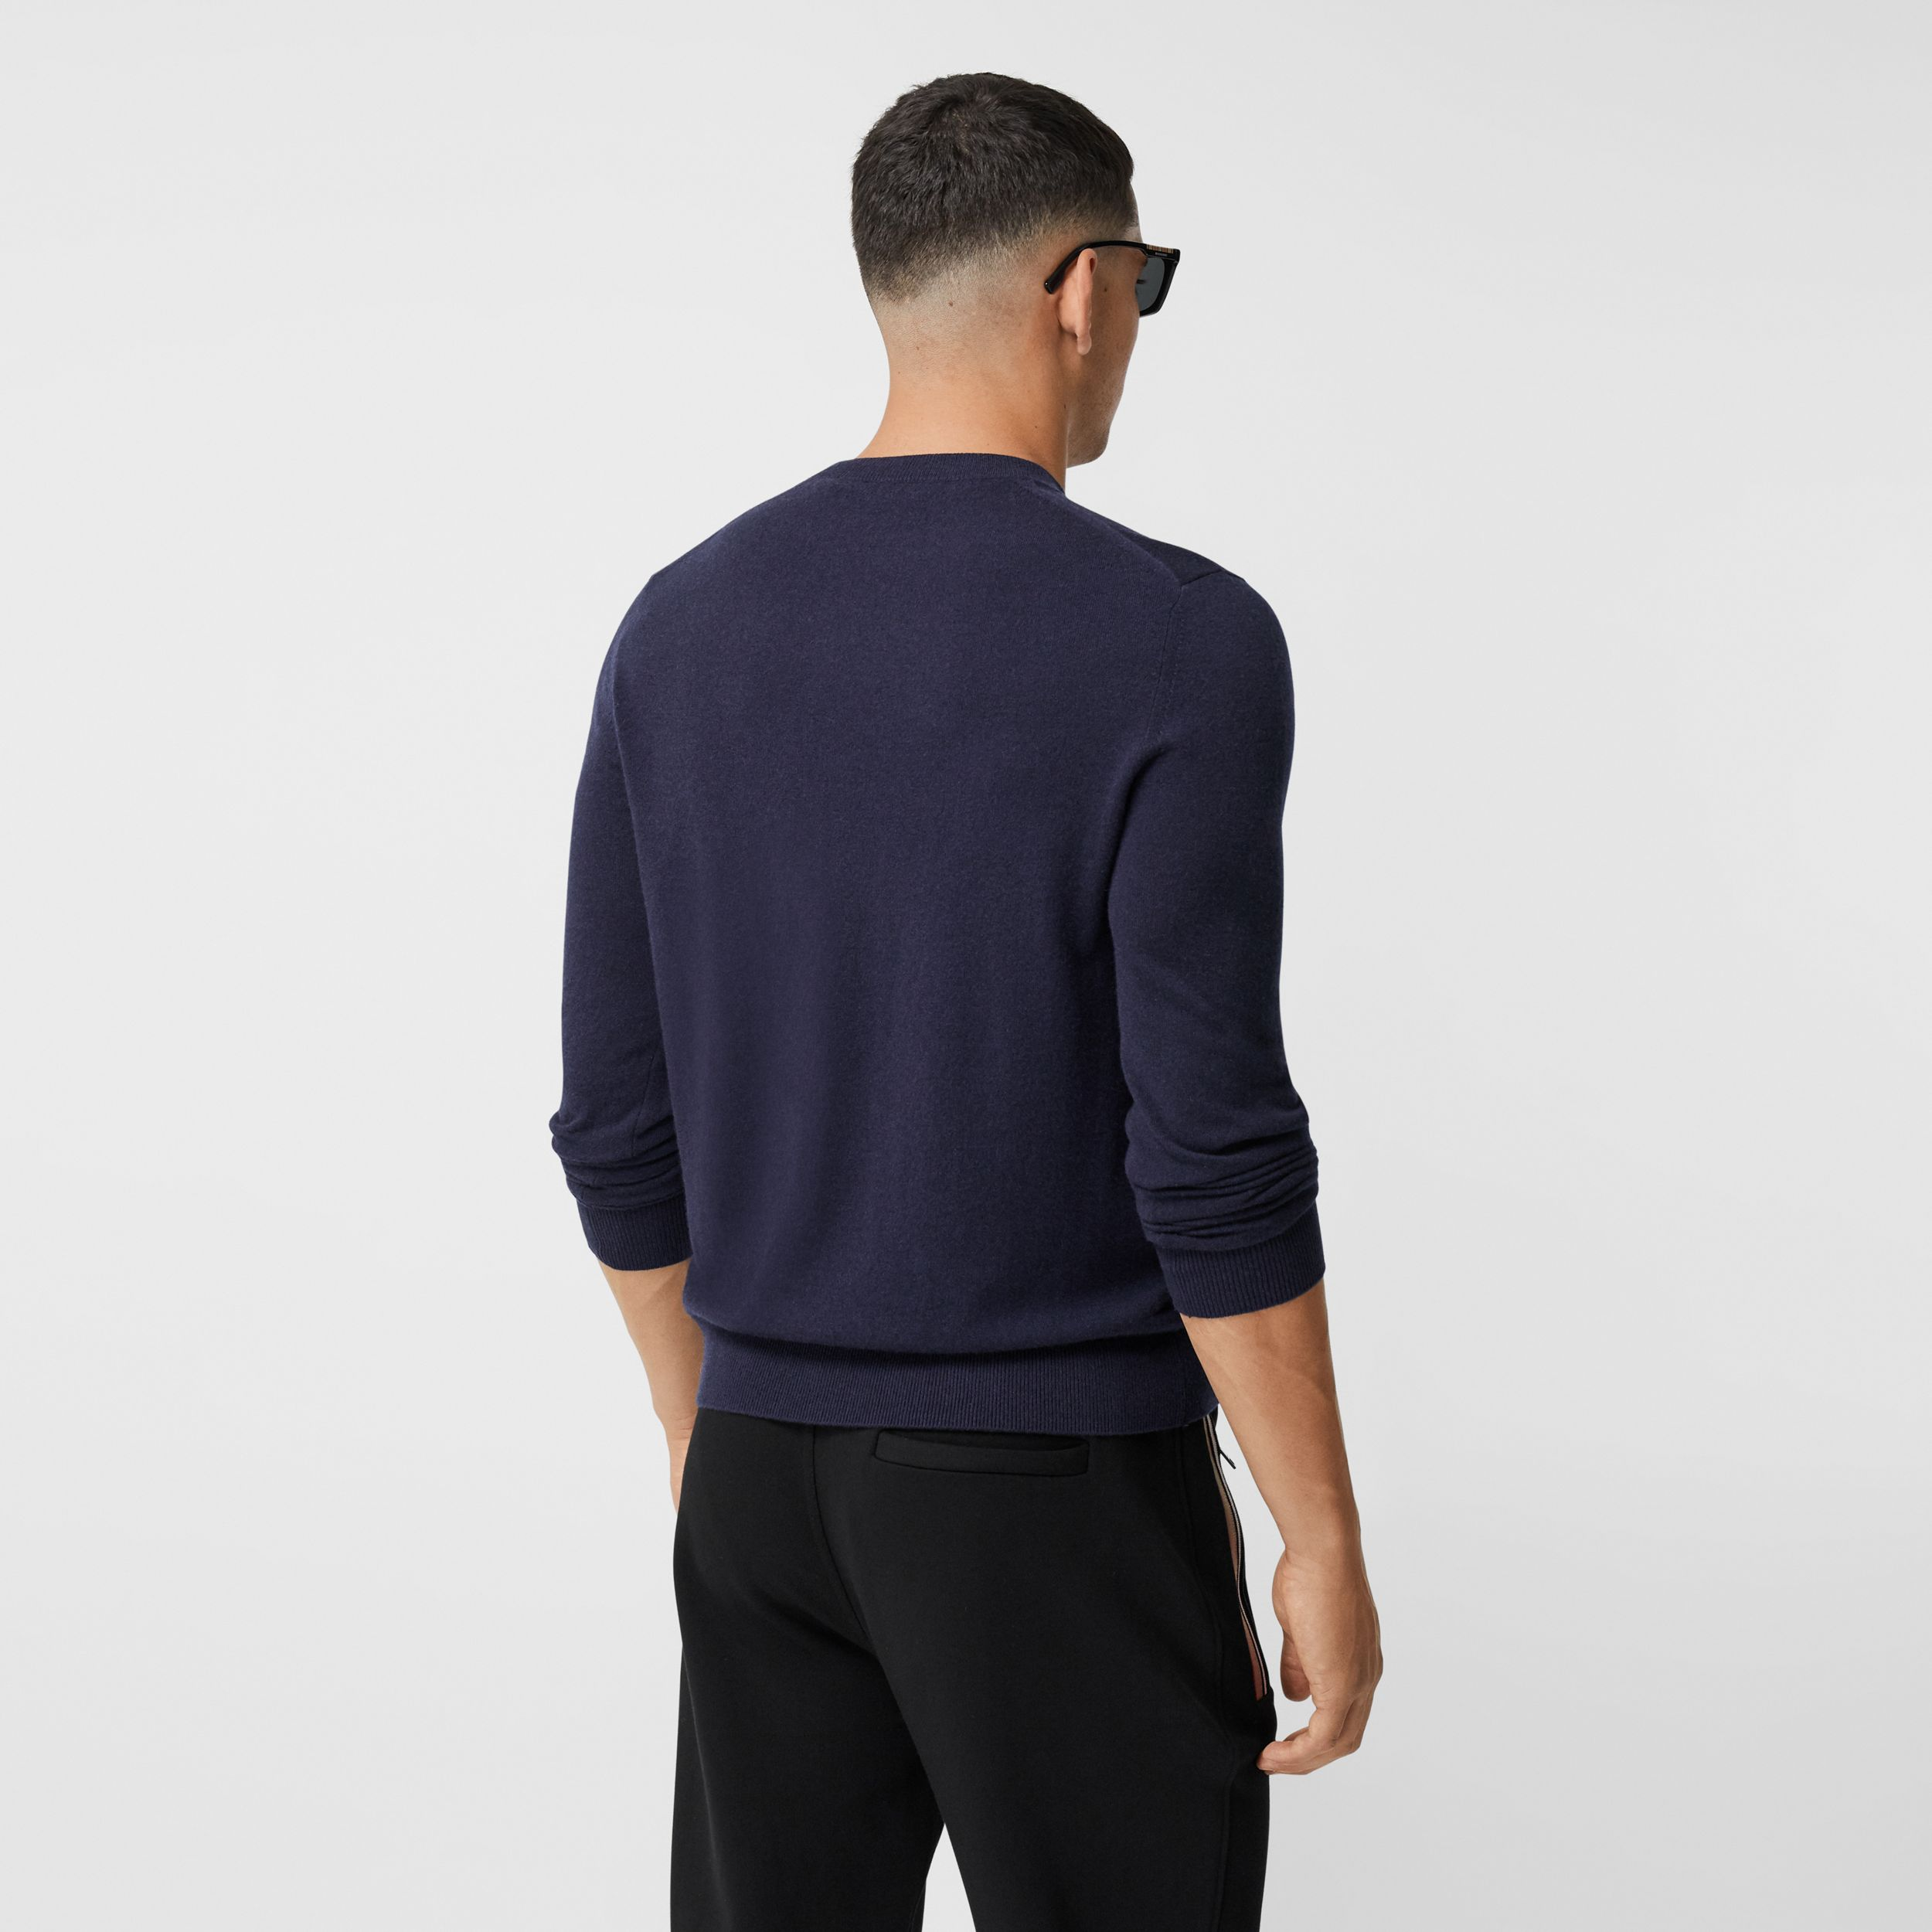 Monogram Motif Cashmere Sweater in Navy - Men | Burberry - 3